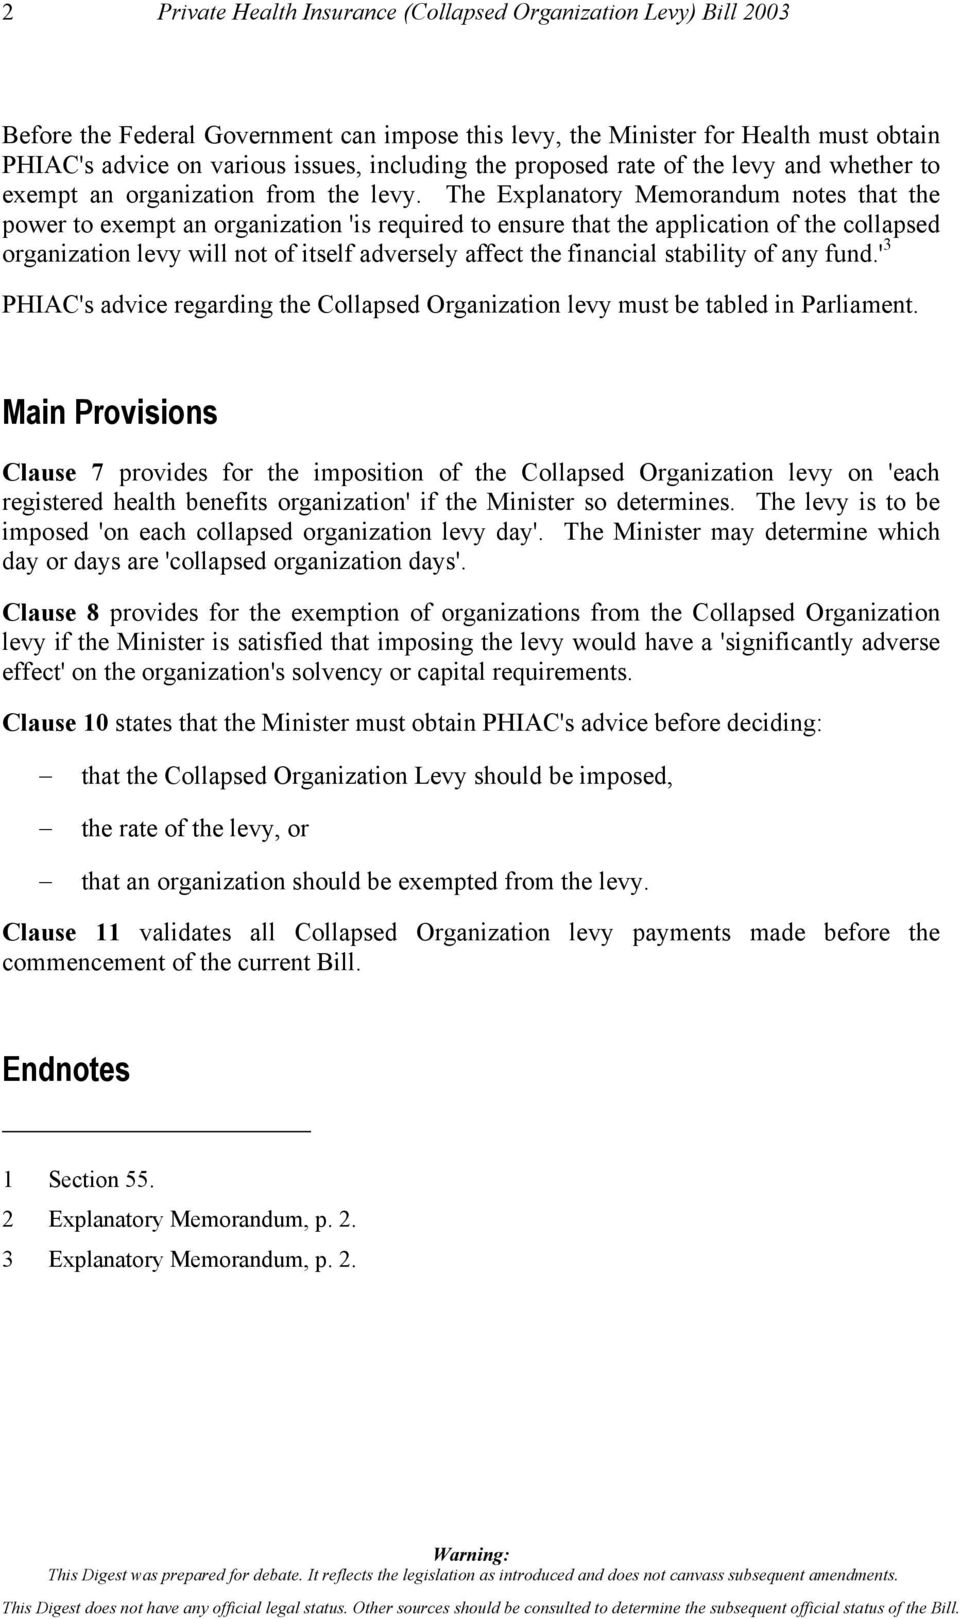 The Explanatory Memorandum notes that the power to exempt an organization 'is required to ensure that the application of the collapsed organization levy will not of itself adversely affect the